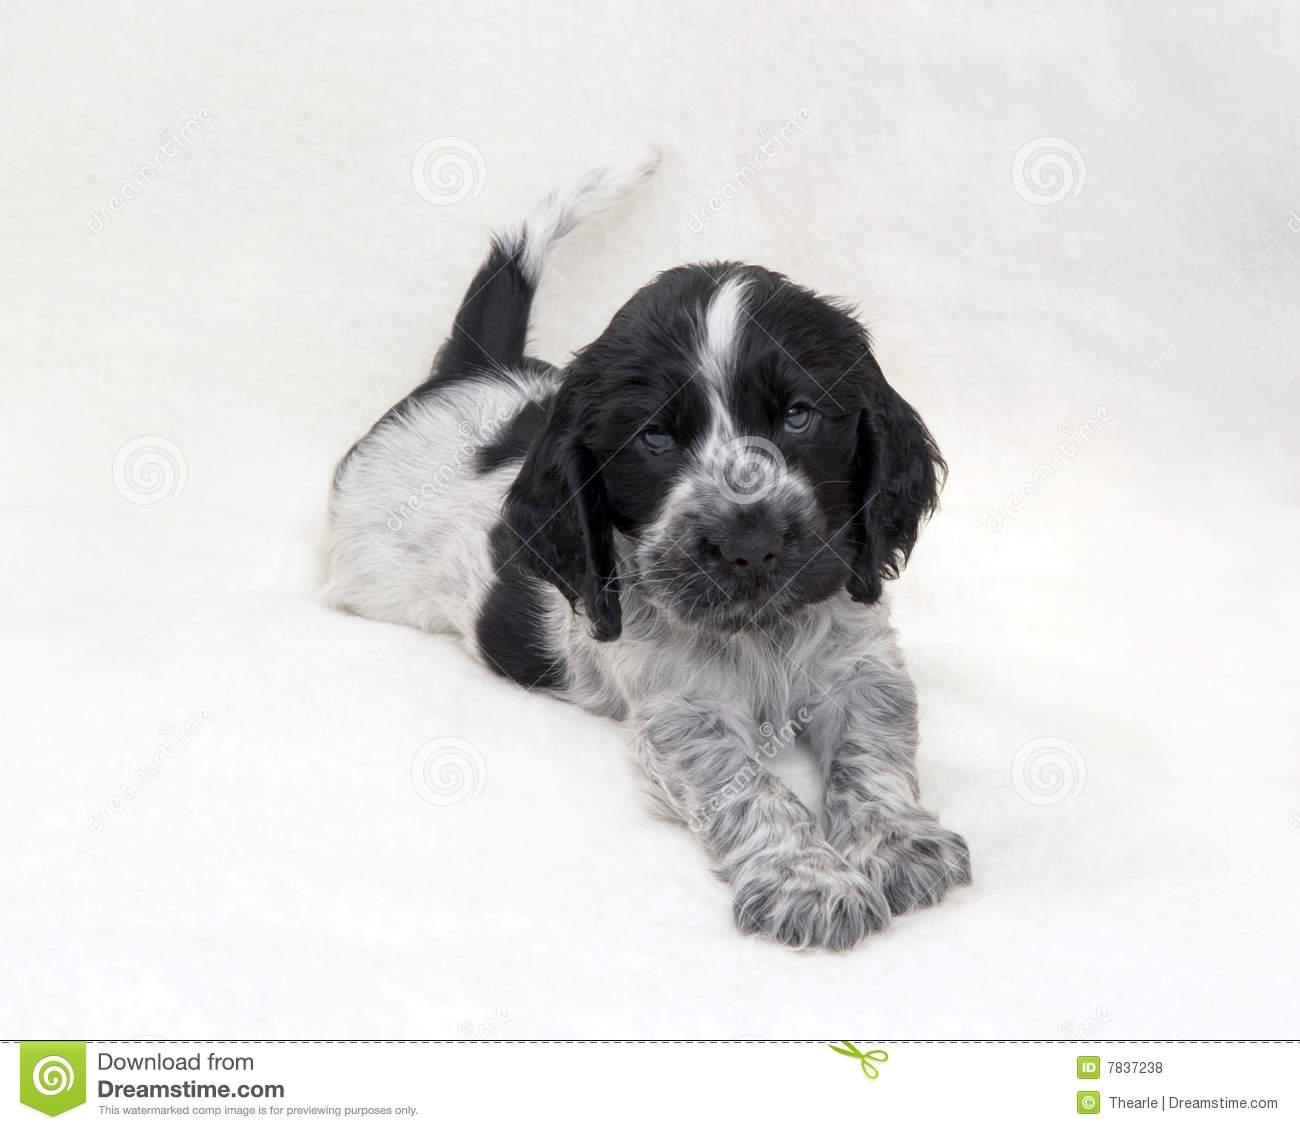 Puppy Cocker Spaniel Blue Roan Photos Free Royalty Free Stock Photos From Dreamstime